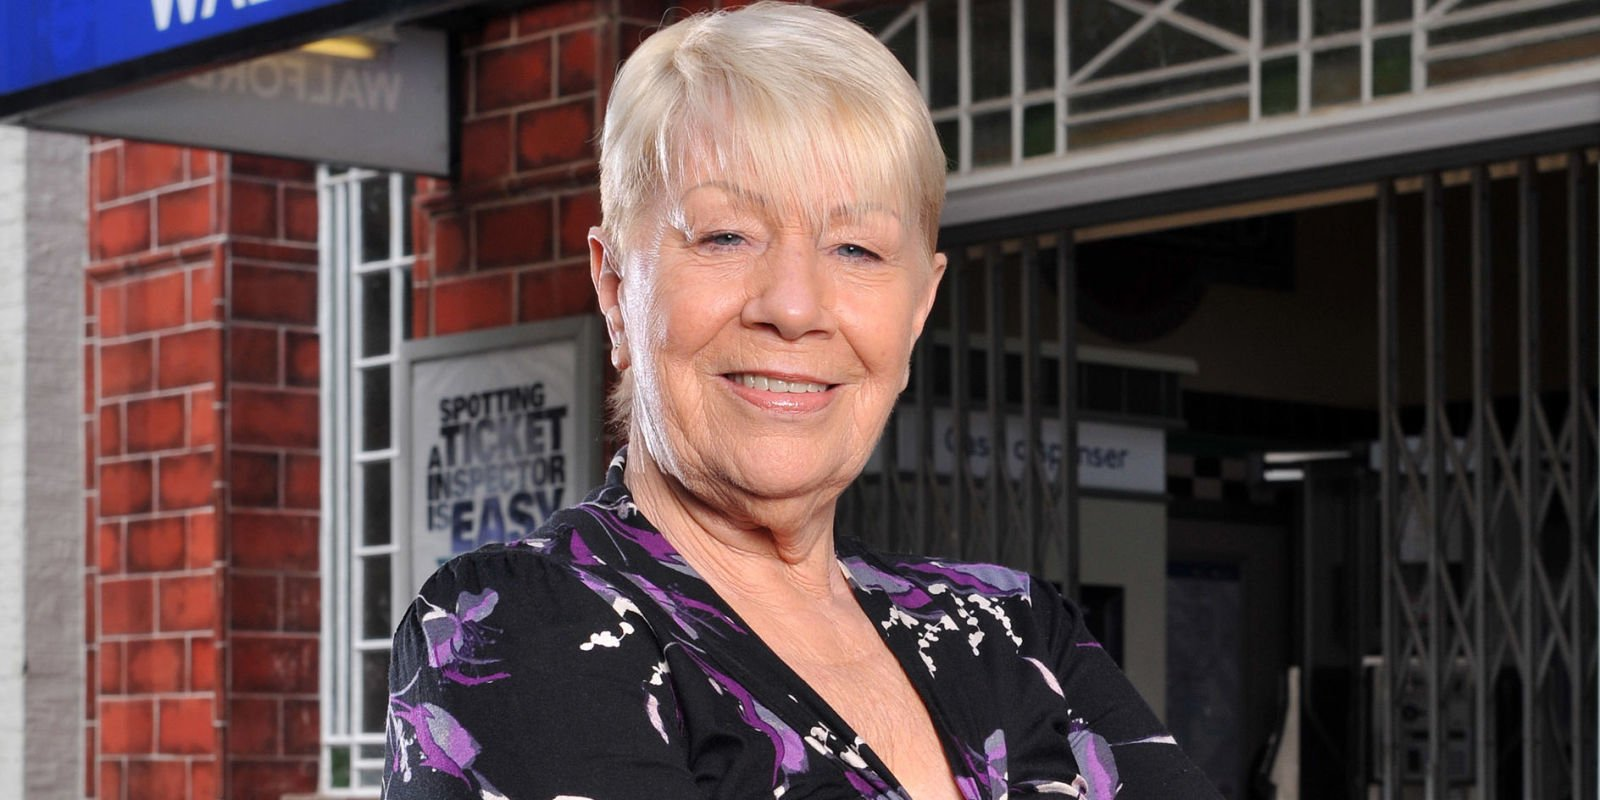 EastEnders spoiler: Big Mo returns to Walford and announces a death